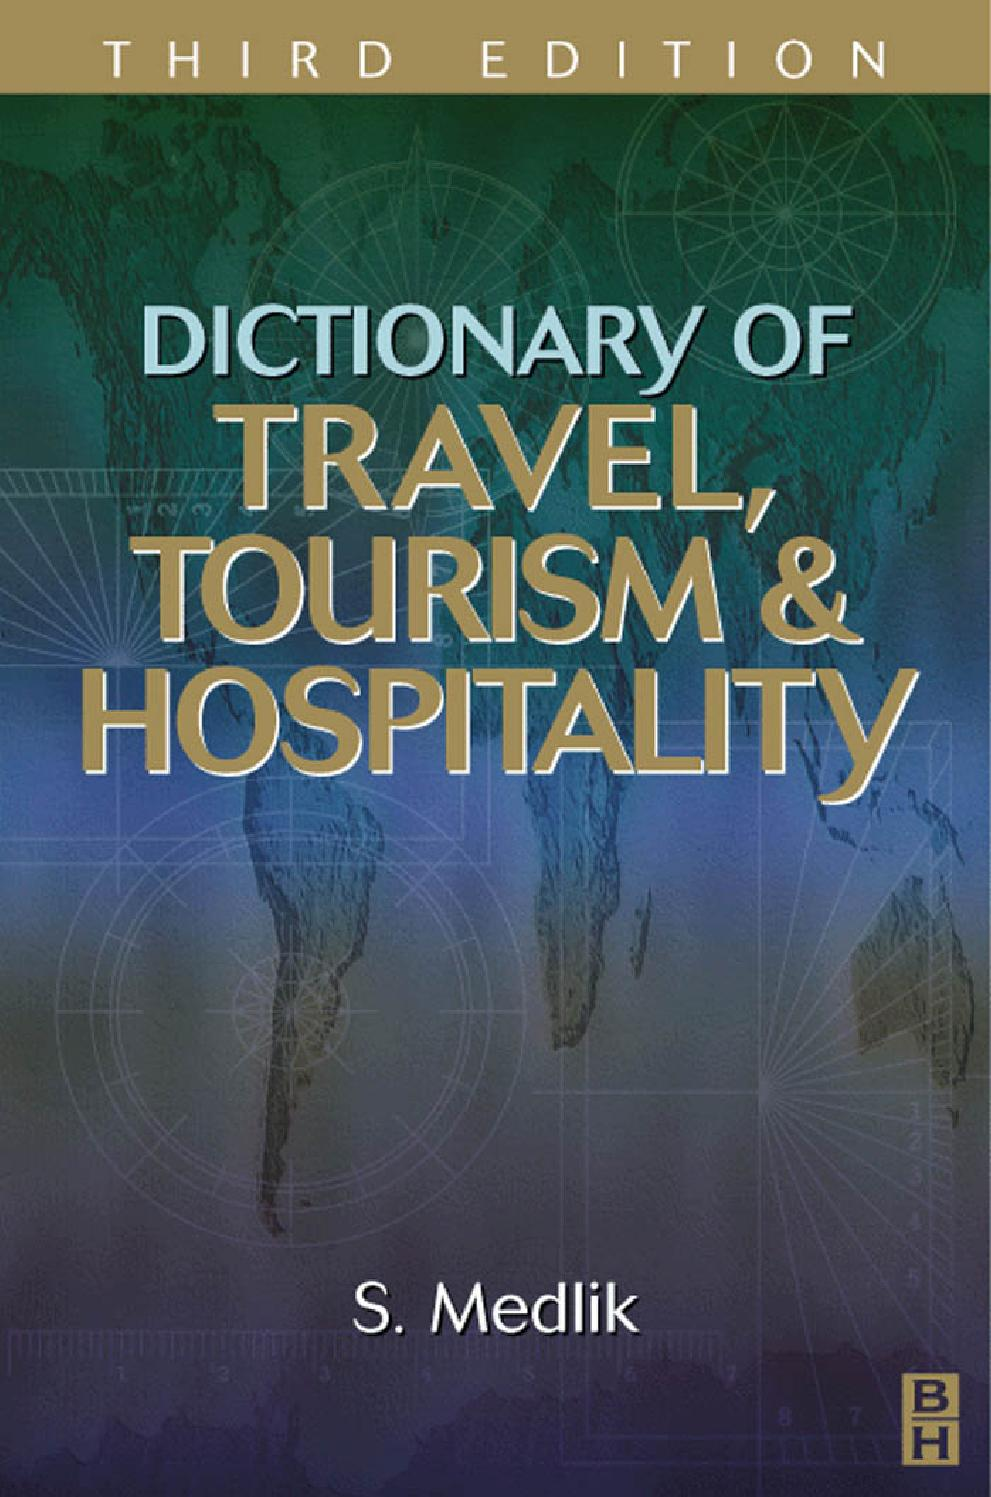 Dictionary of travel, tourism, & hospitality by miguel soto